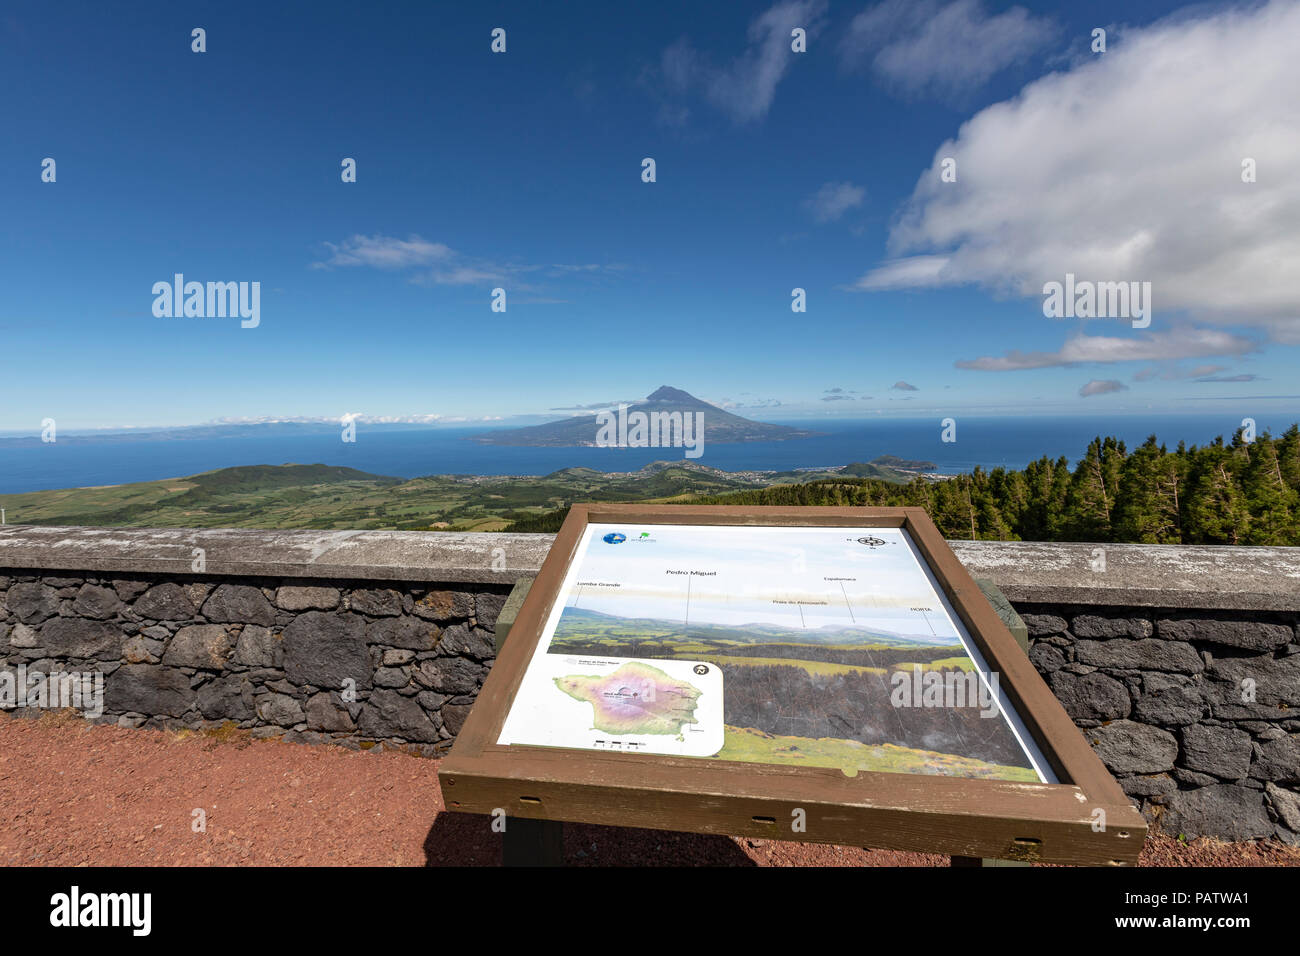 Mount Pico from a viewpoint in Faial island, Azores, Portugal - Stock Image